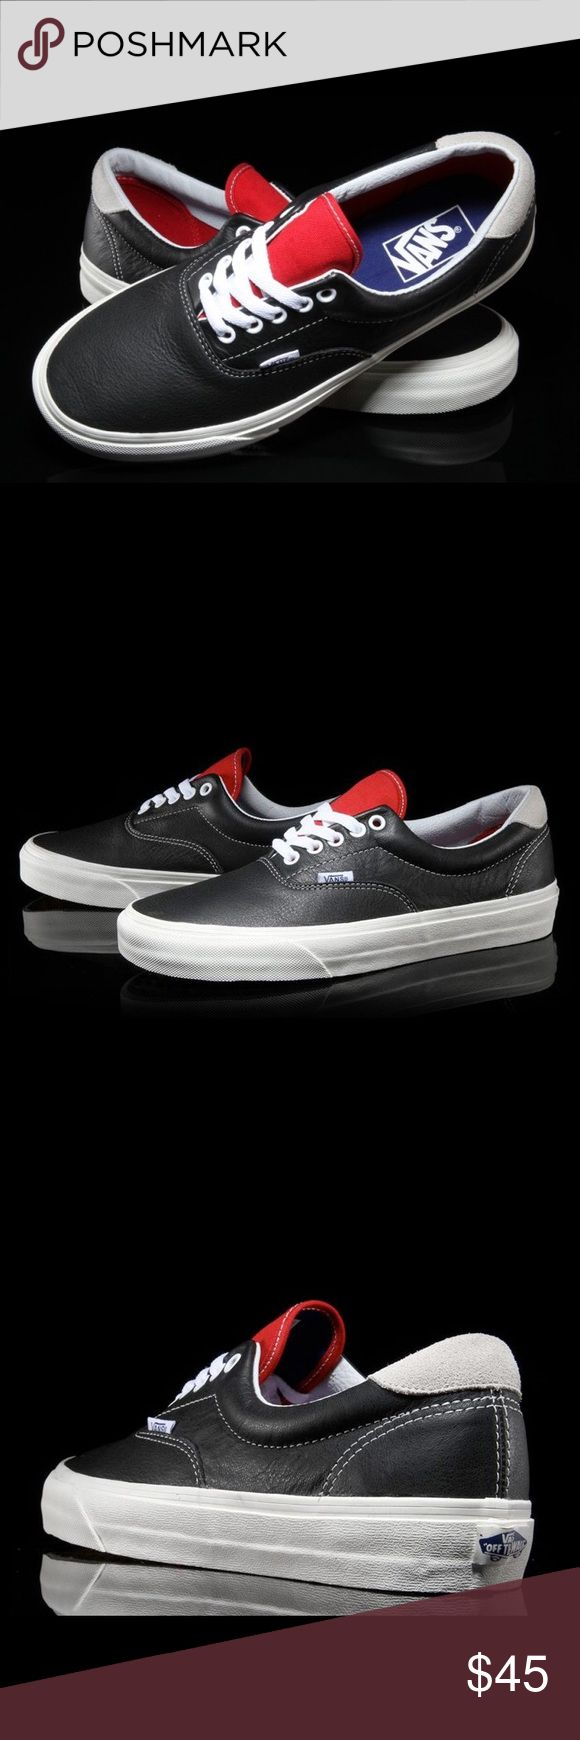 Vans Era 59 Black/Racing Red Vintage Sport Vans looks ahead to the warmer season with a trio of new colorways for the Era 59 Vintage silhouette. The iconic low-top is reworked in premium leather across its upper with contrasting touches of suede and canvas along the heel and tongue. Finished off with a crisp vulcanized sole, pick up the white, red and black colorways. The shoes pictured here are the exact pair for sale. Vans Shoes Sneakers